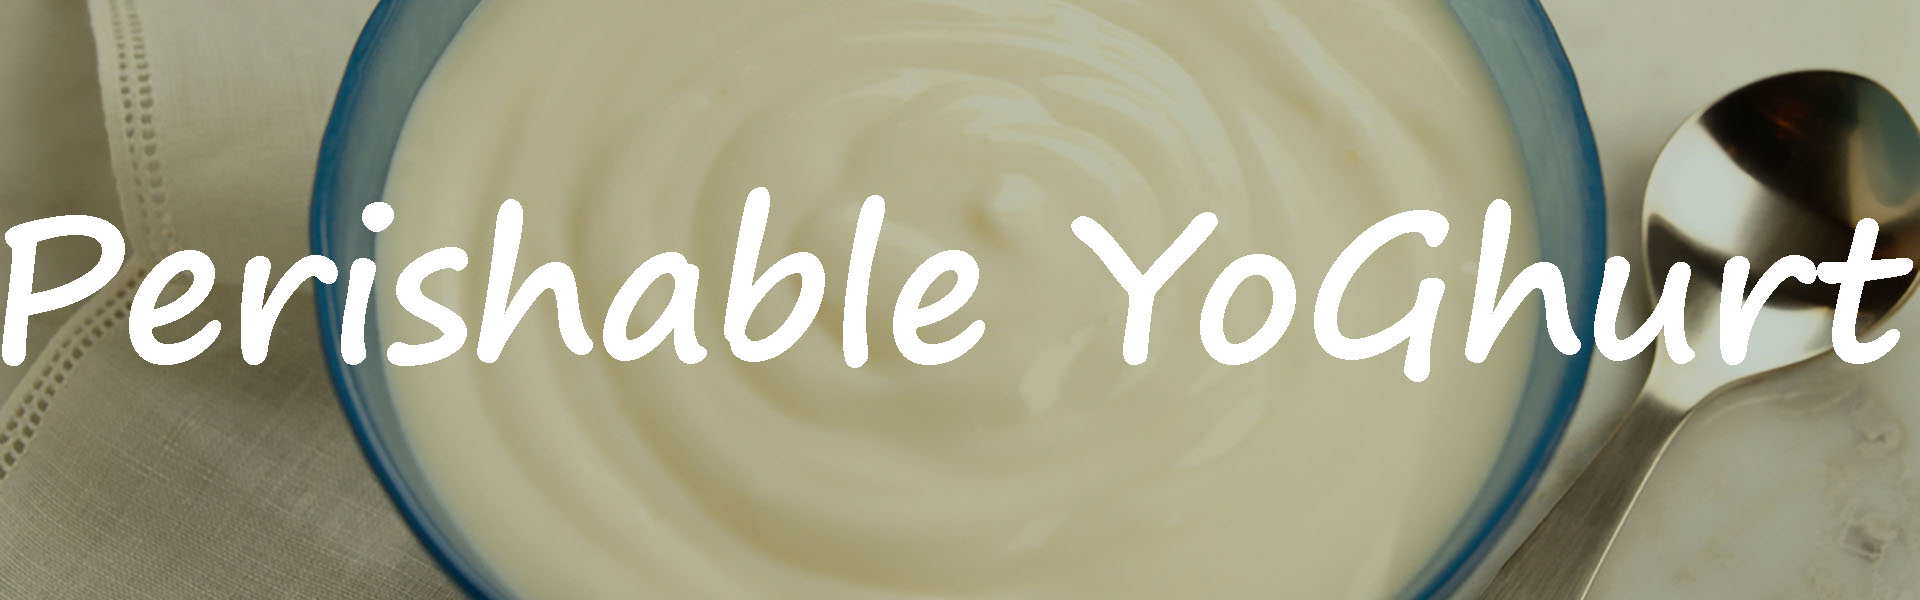 web-ready-perishable-yoghurt-2